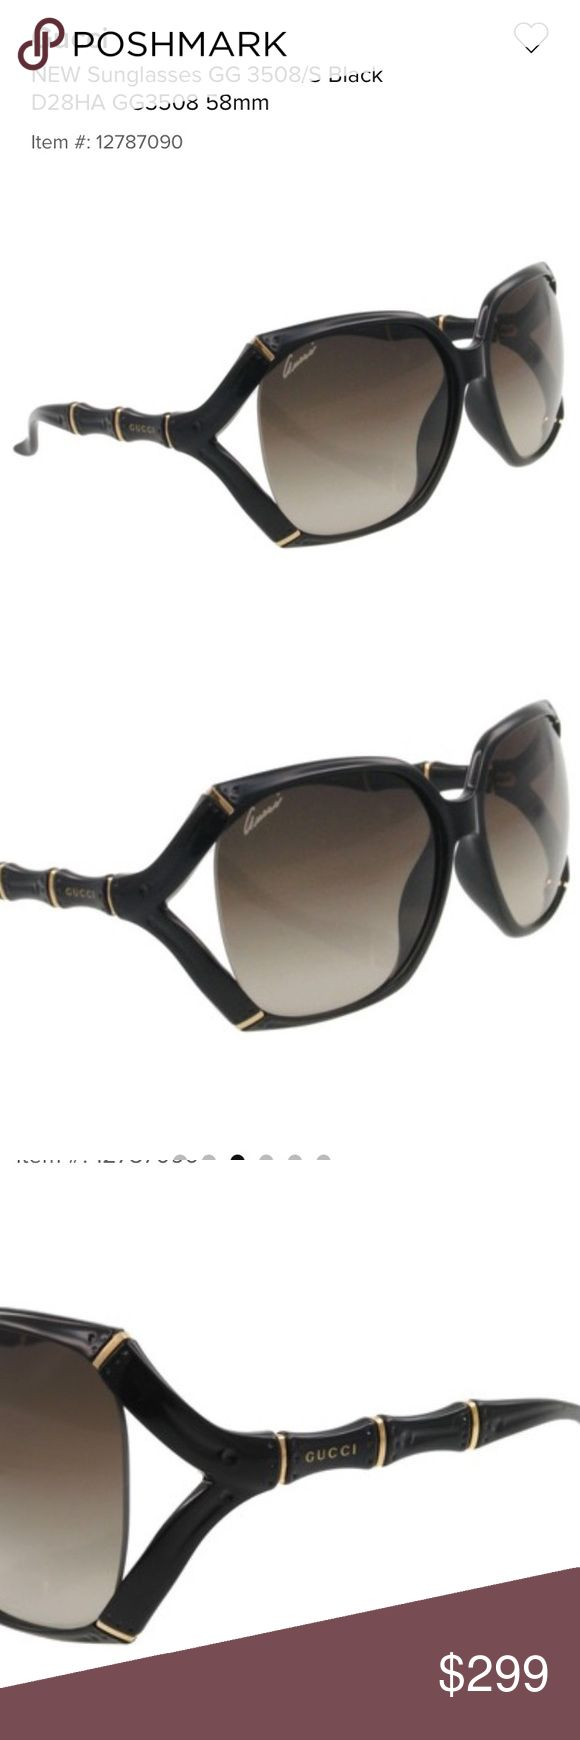 GUCCI sunglasses GG 3508/S Black D28HA 58 mm💝 Price*$399.99 Brand Gucci•In stock Brand: Gucci, Model: GG 3508/S, Color Code: D28HA, Lens Color: Brown gradient, Frame Color: Black and gold, Gender:, Size: 58/16/110, Made: ... Gucci Accessories Sunglasses